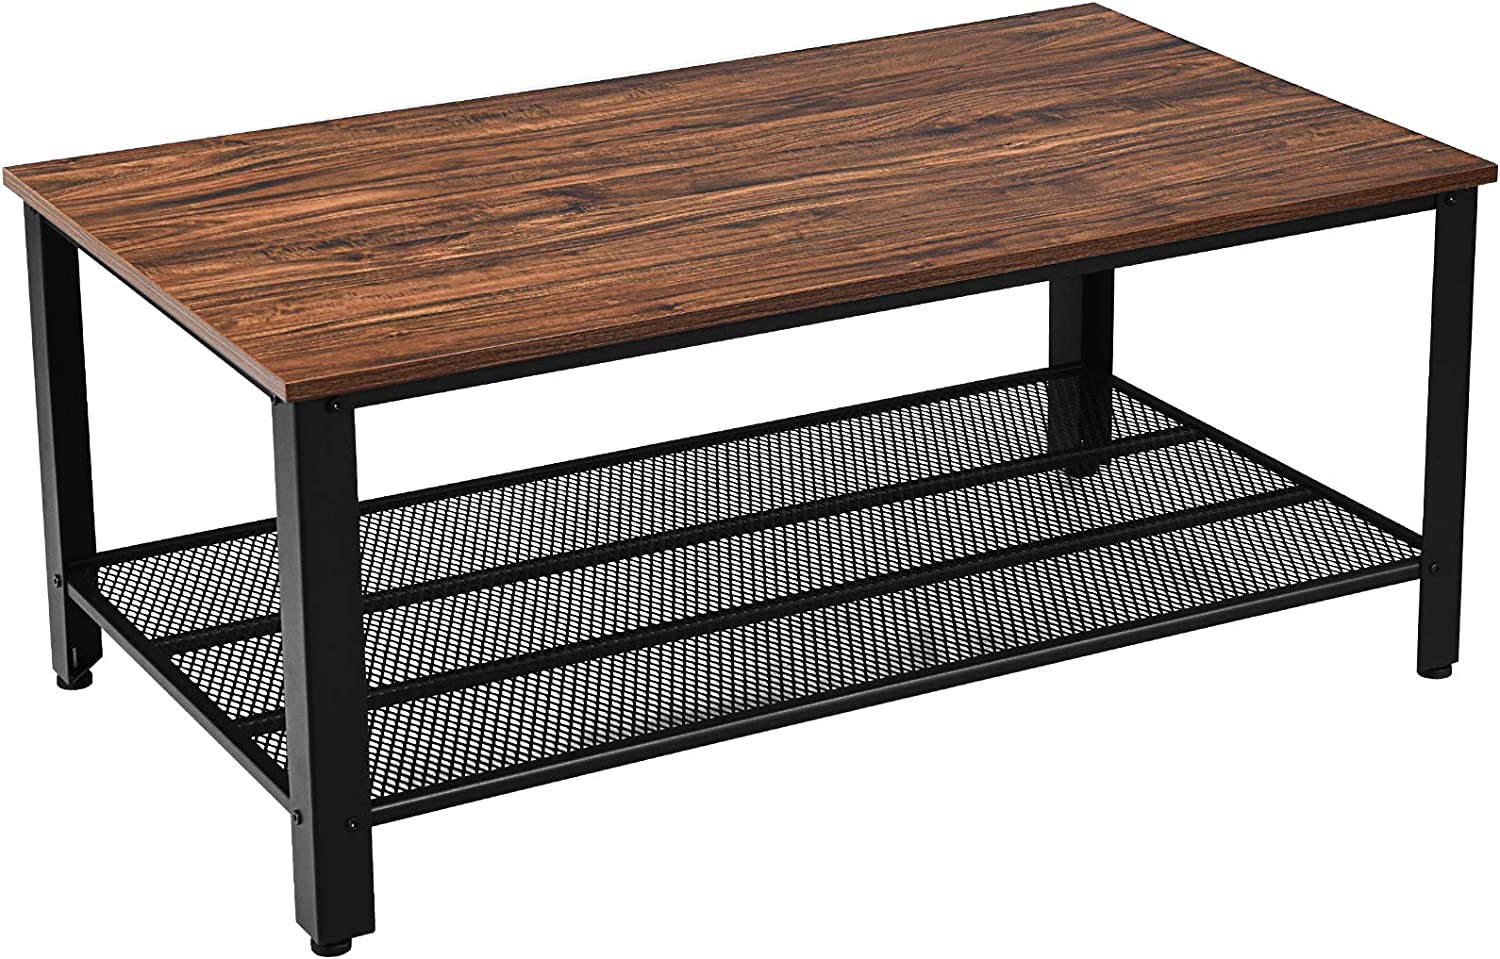 Giantex Coffee Table 42 Inch W//Storage Shelf and Adjustable Feet Nut-Brown Retro Style and Scratch-Proof Multipurpose for Living Room Accent Tea Snack Table